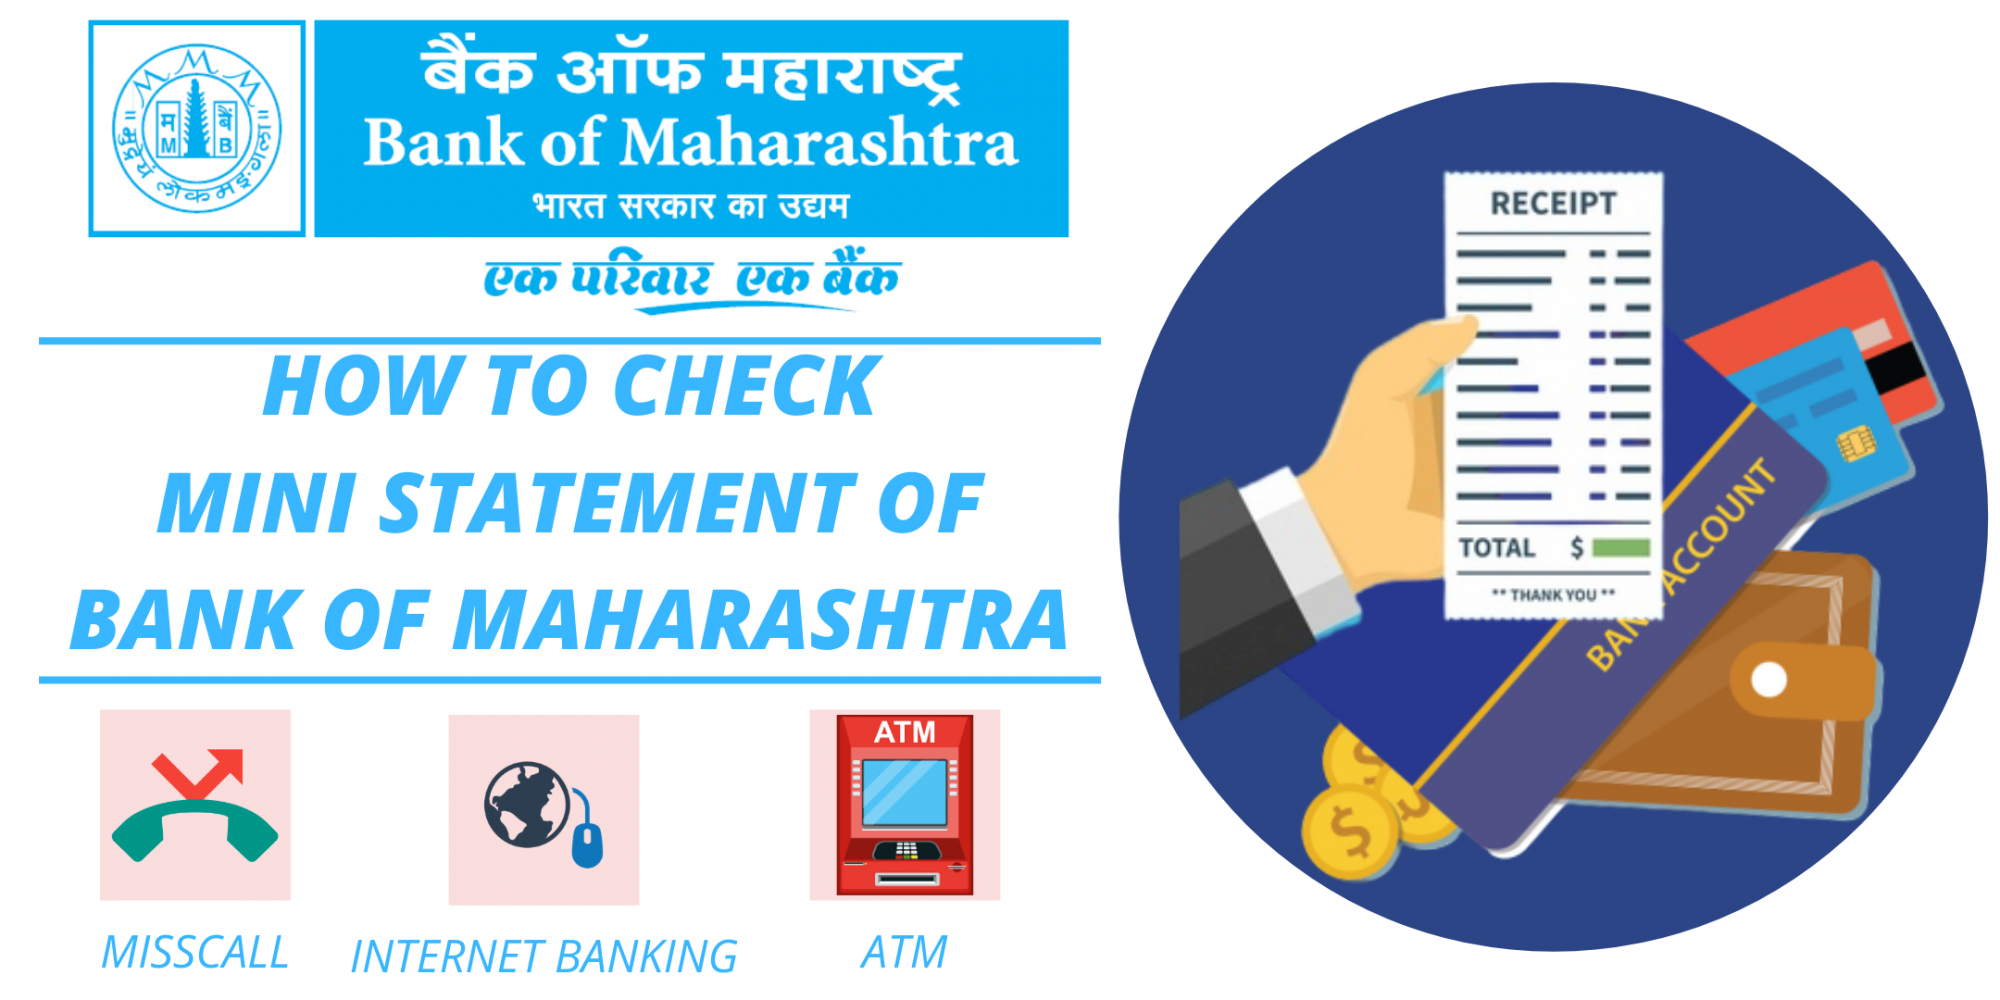 check Mini Statement in the Bank of Maharashtra